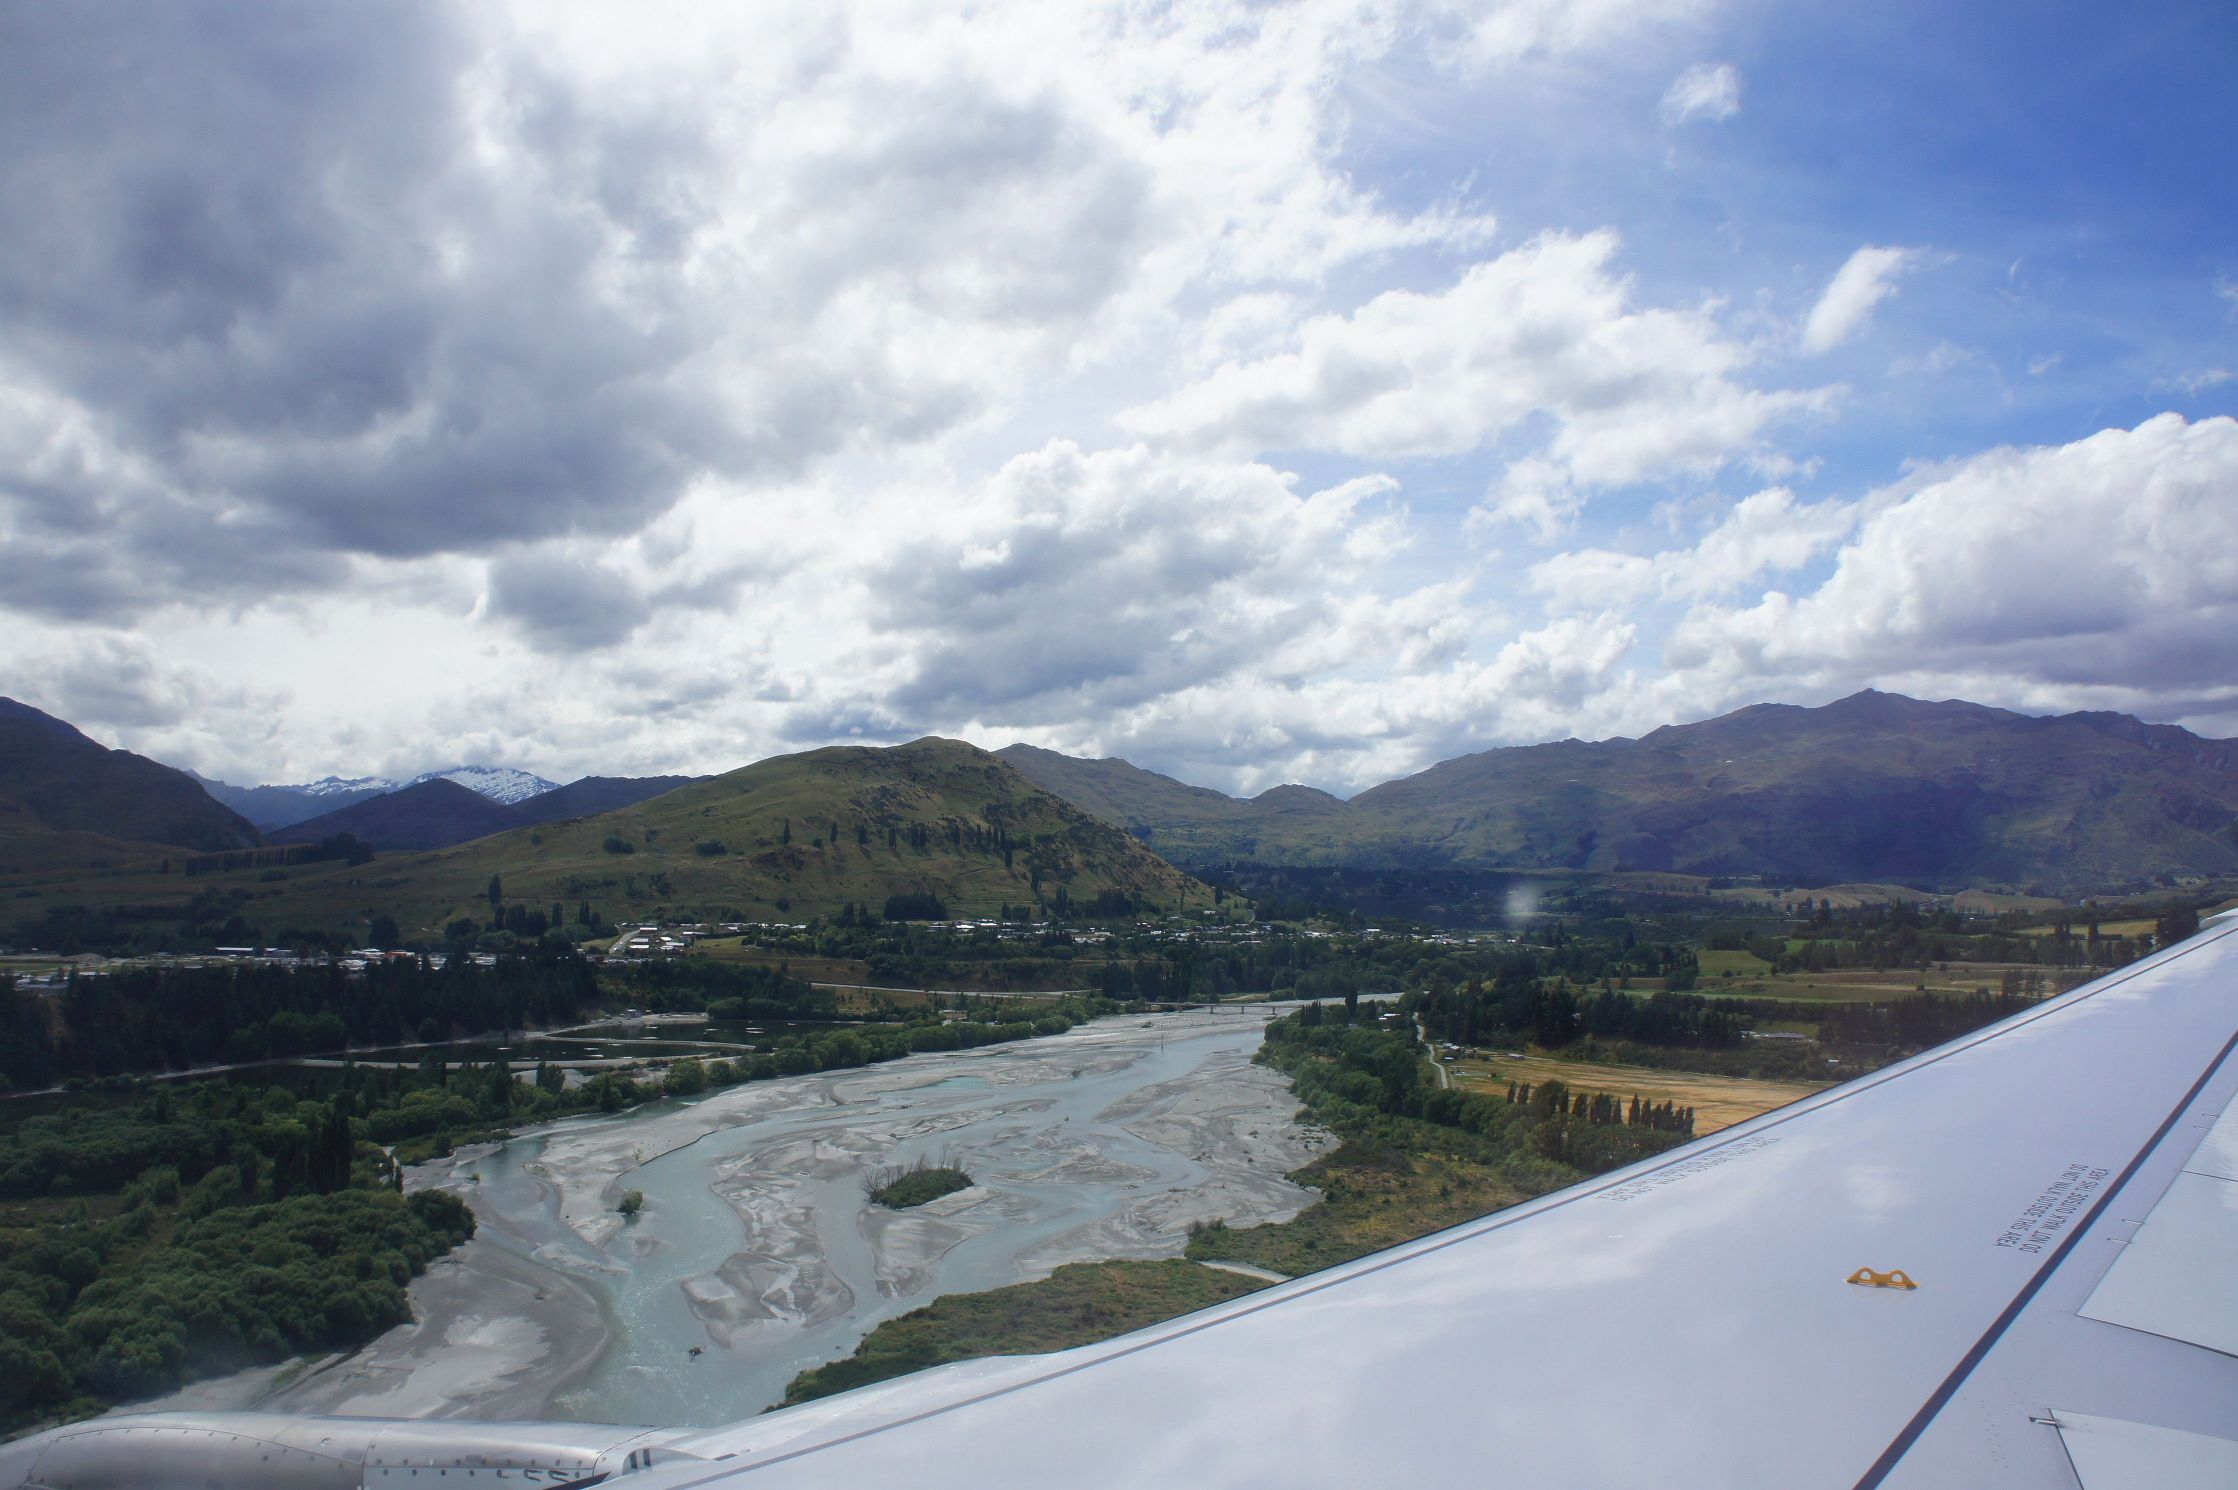 The Shotover River just before landing